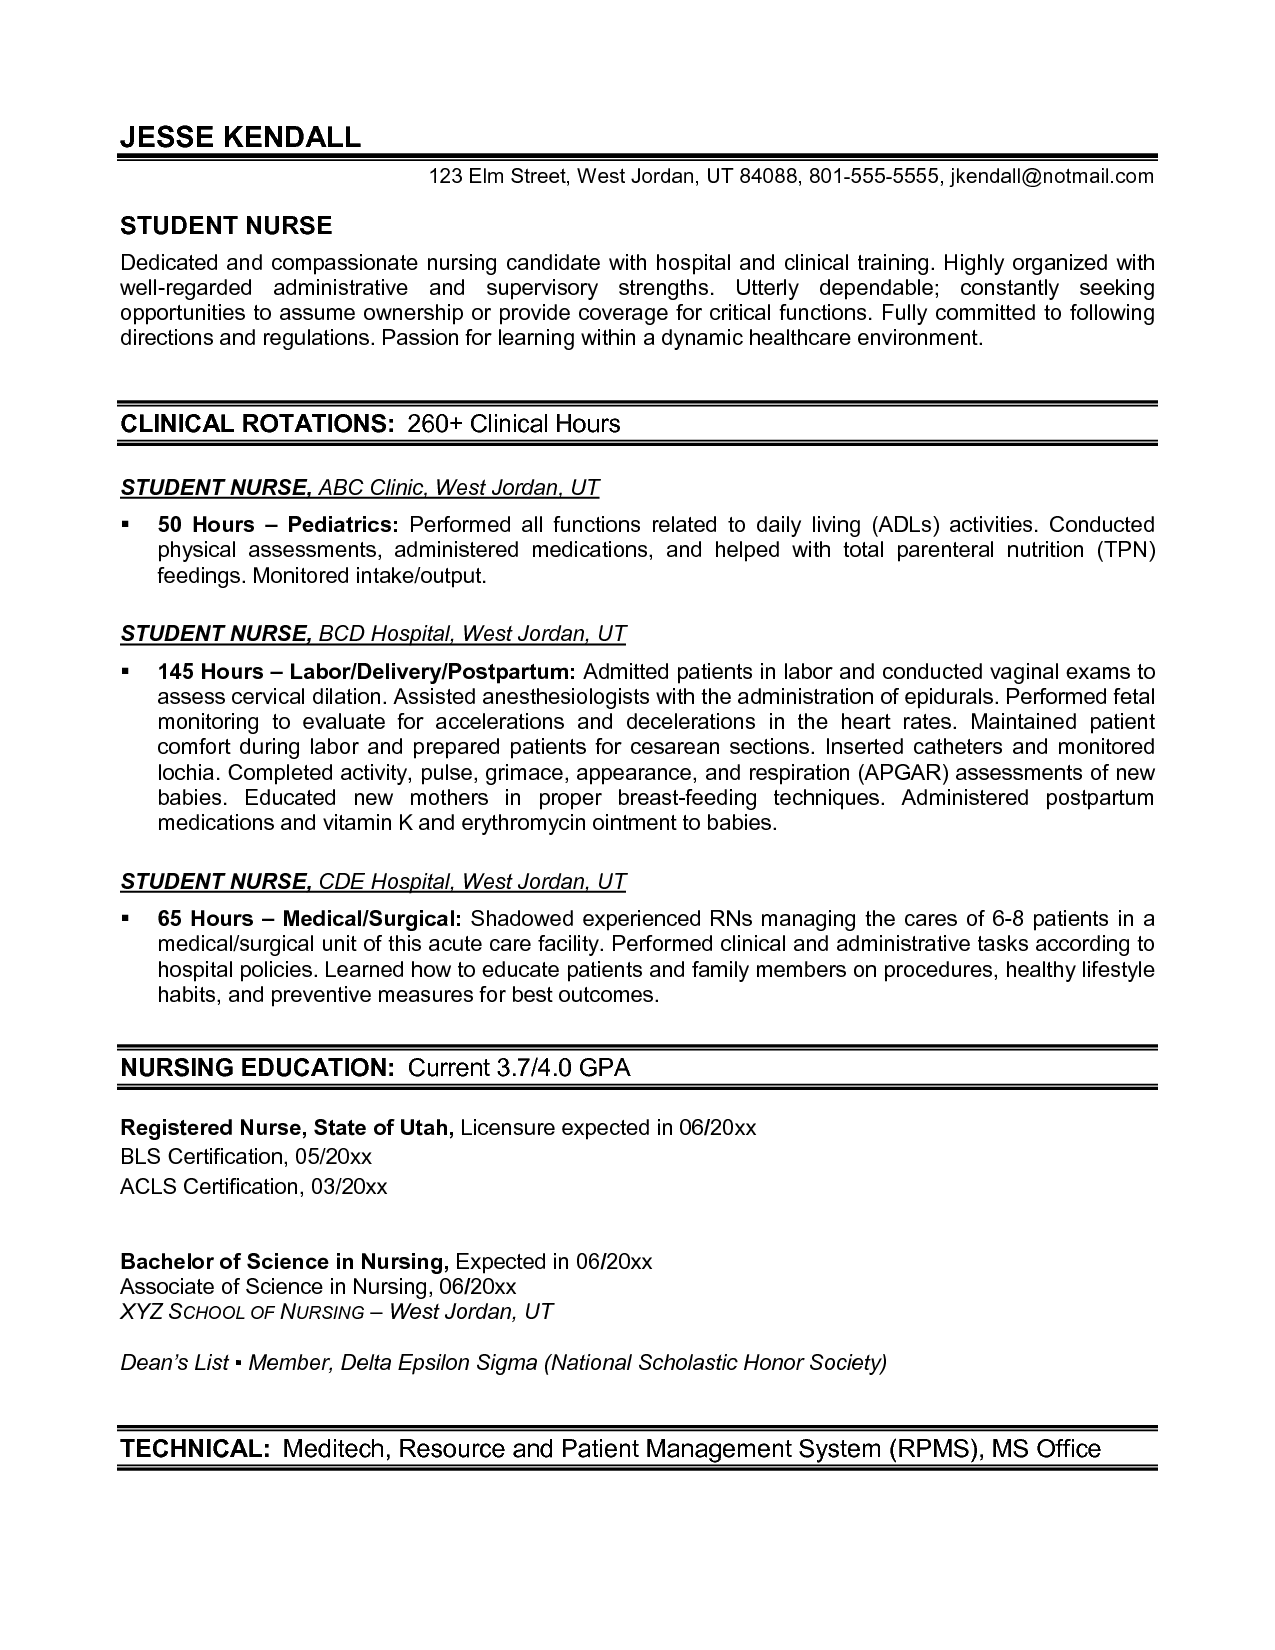 nursing resume template best templateresume templates cover letter examples - Icu Nurse Resume Examples